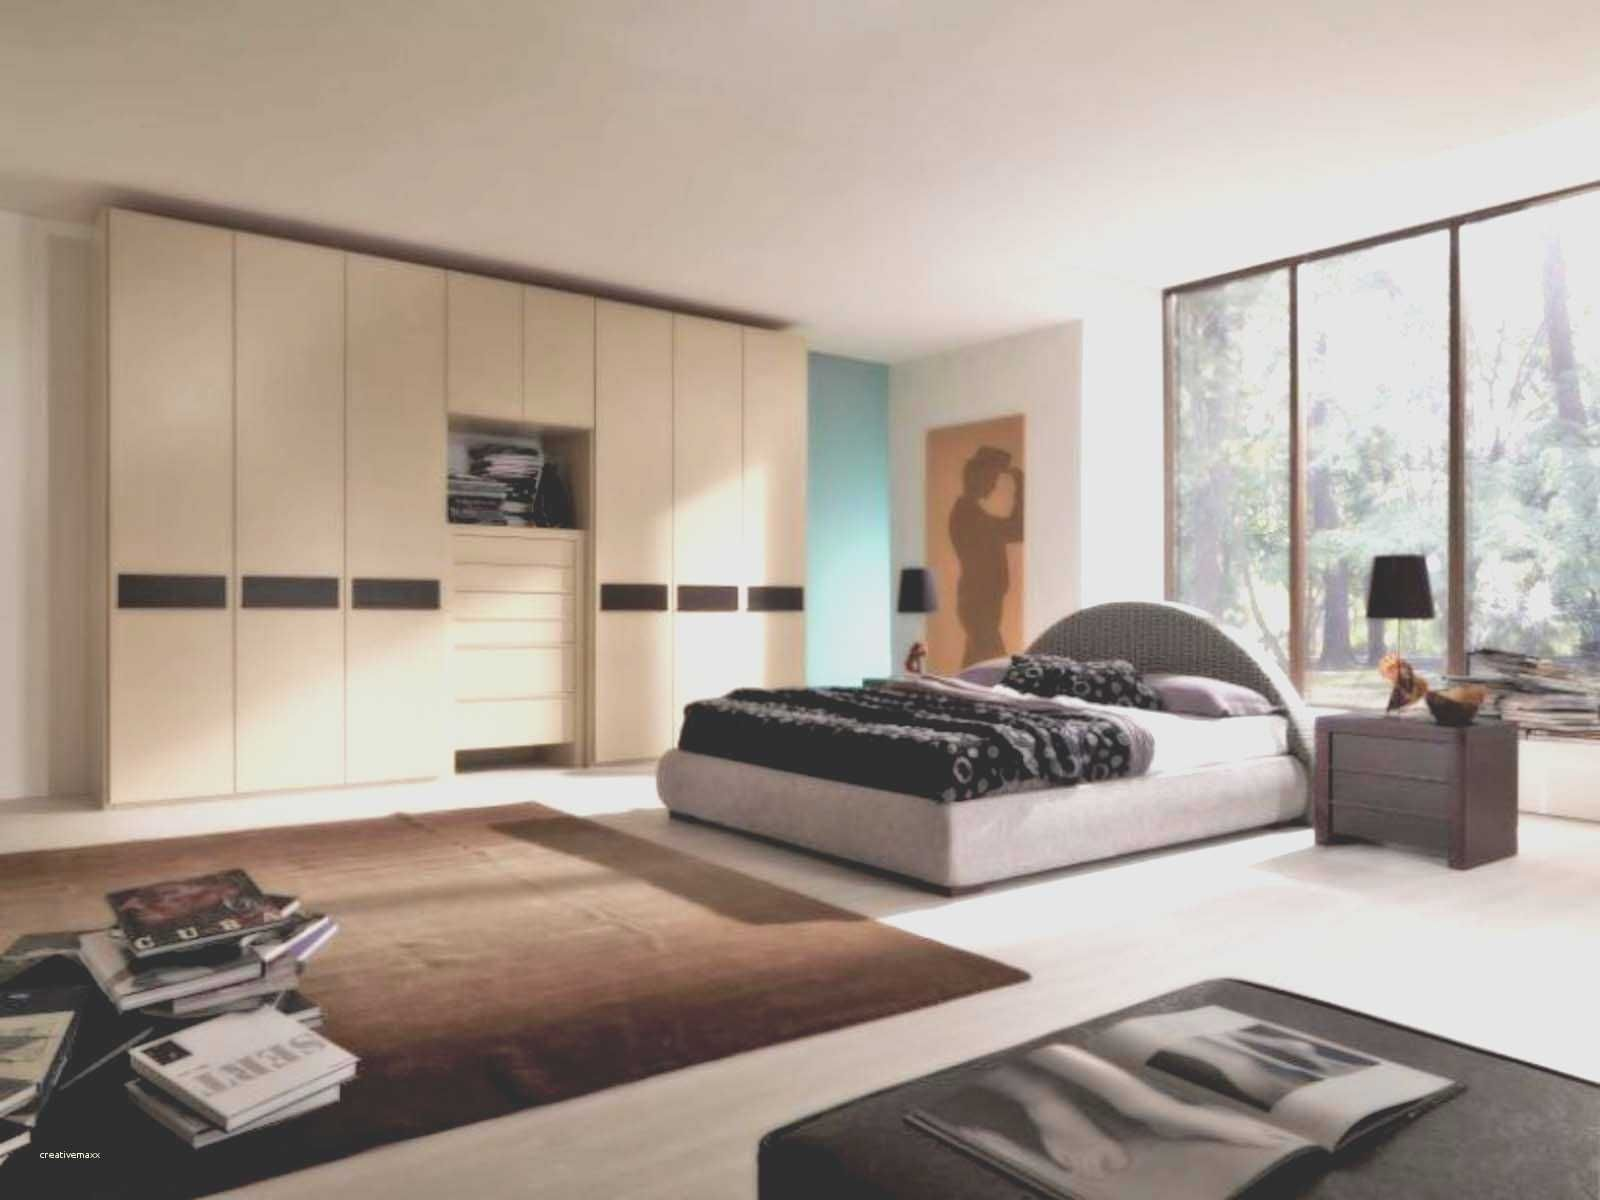 Pin on bedroom design ideas - Bedroom layout ideas for rectangular rooms ...